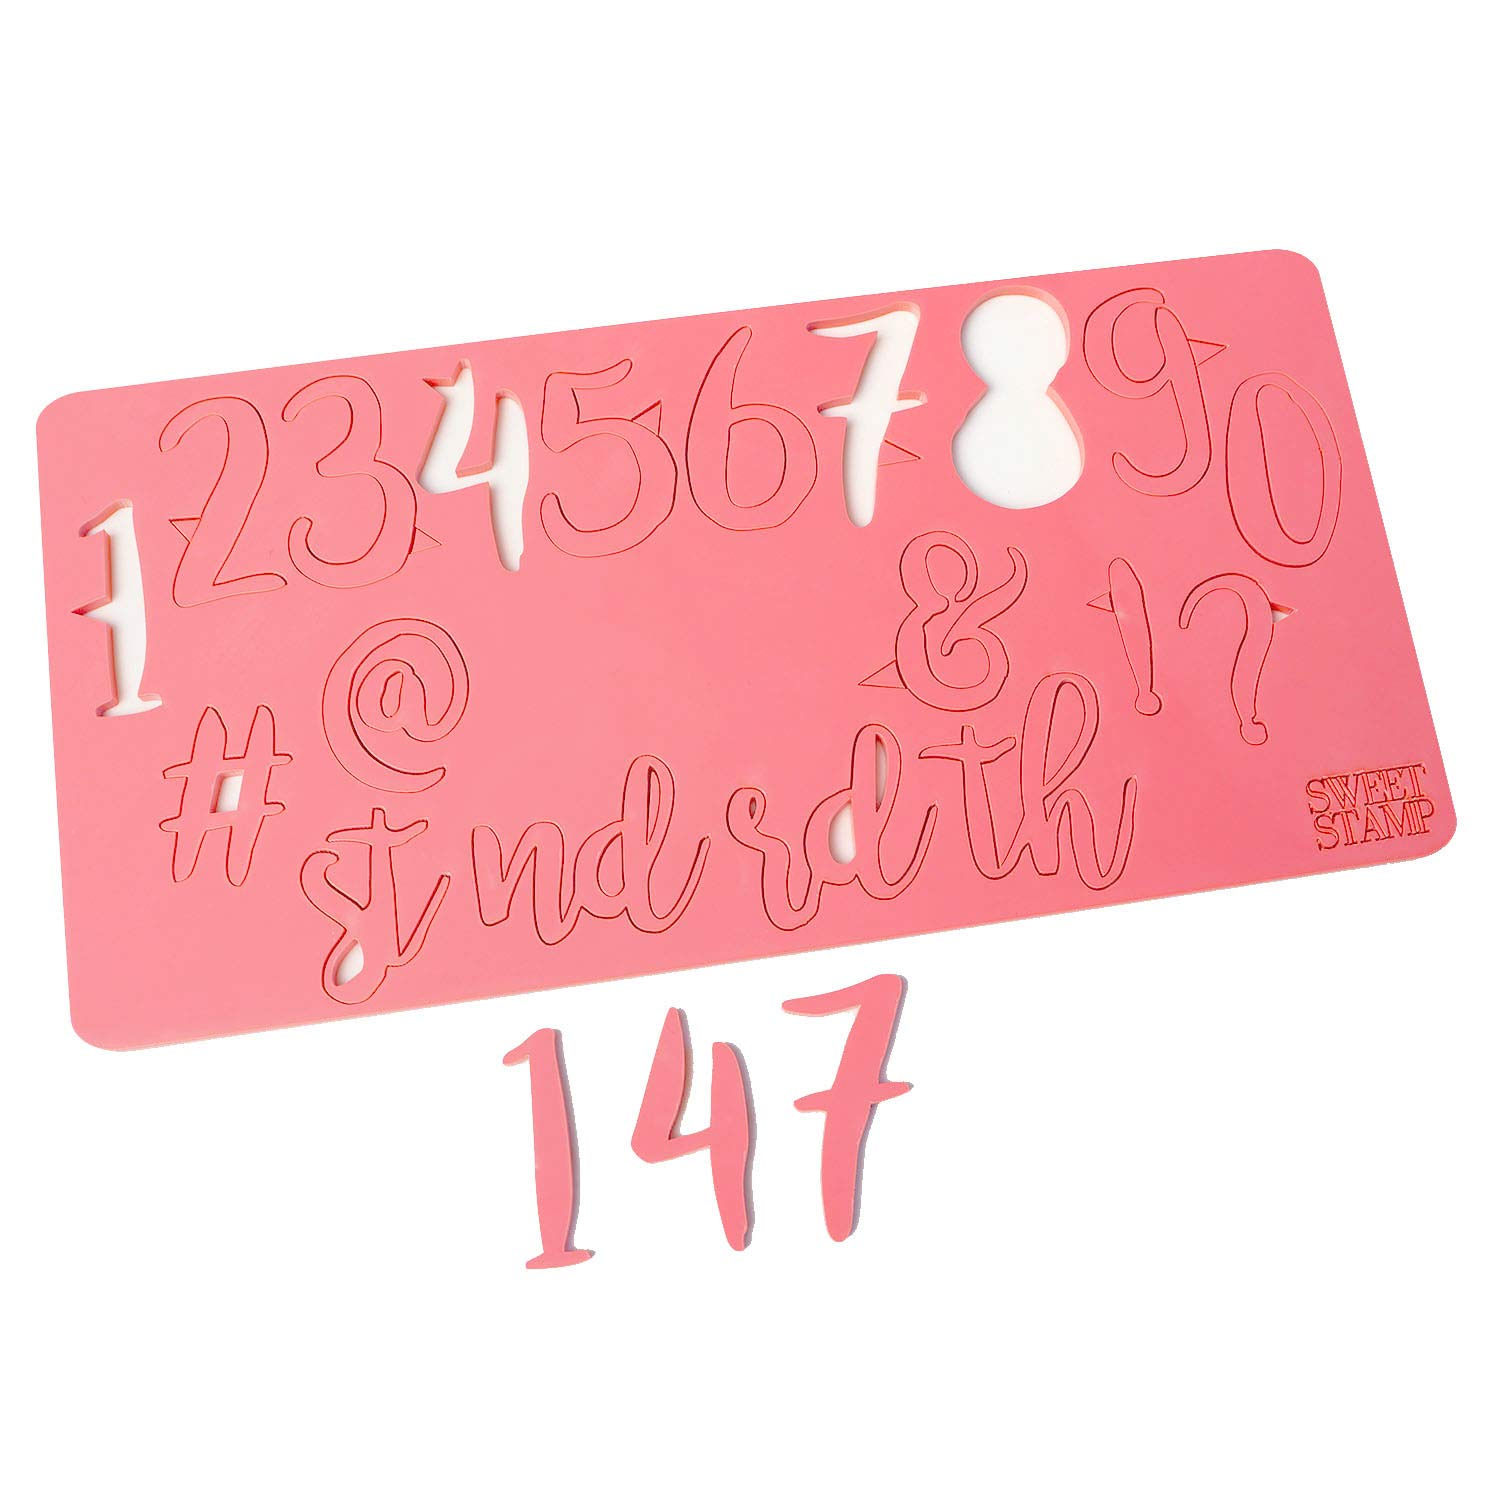 Sweet Stamp by AmyCakes Plastic Stylish Numbers and Symbols for Embossing Cakes